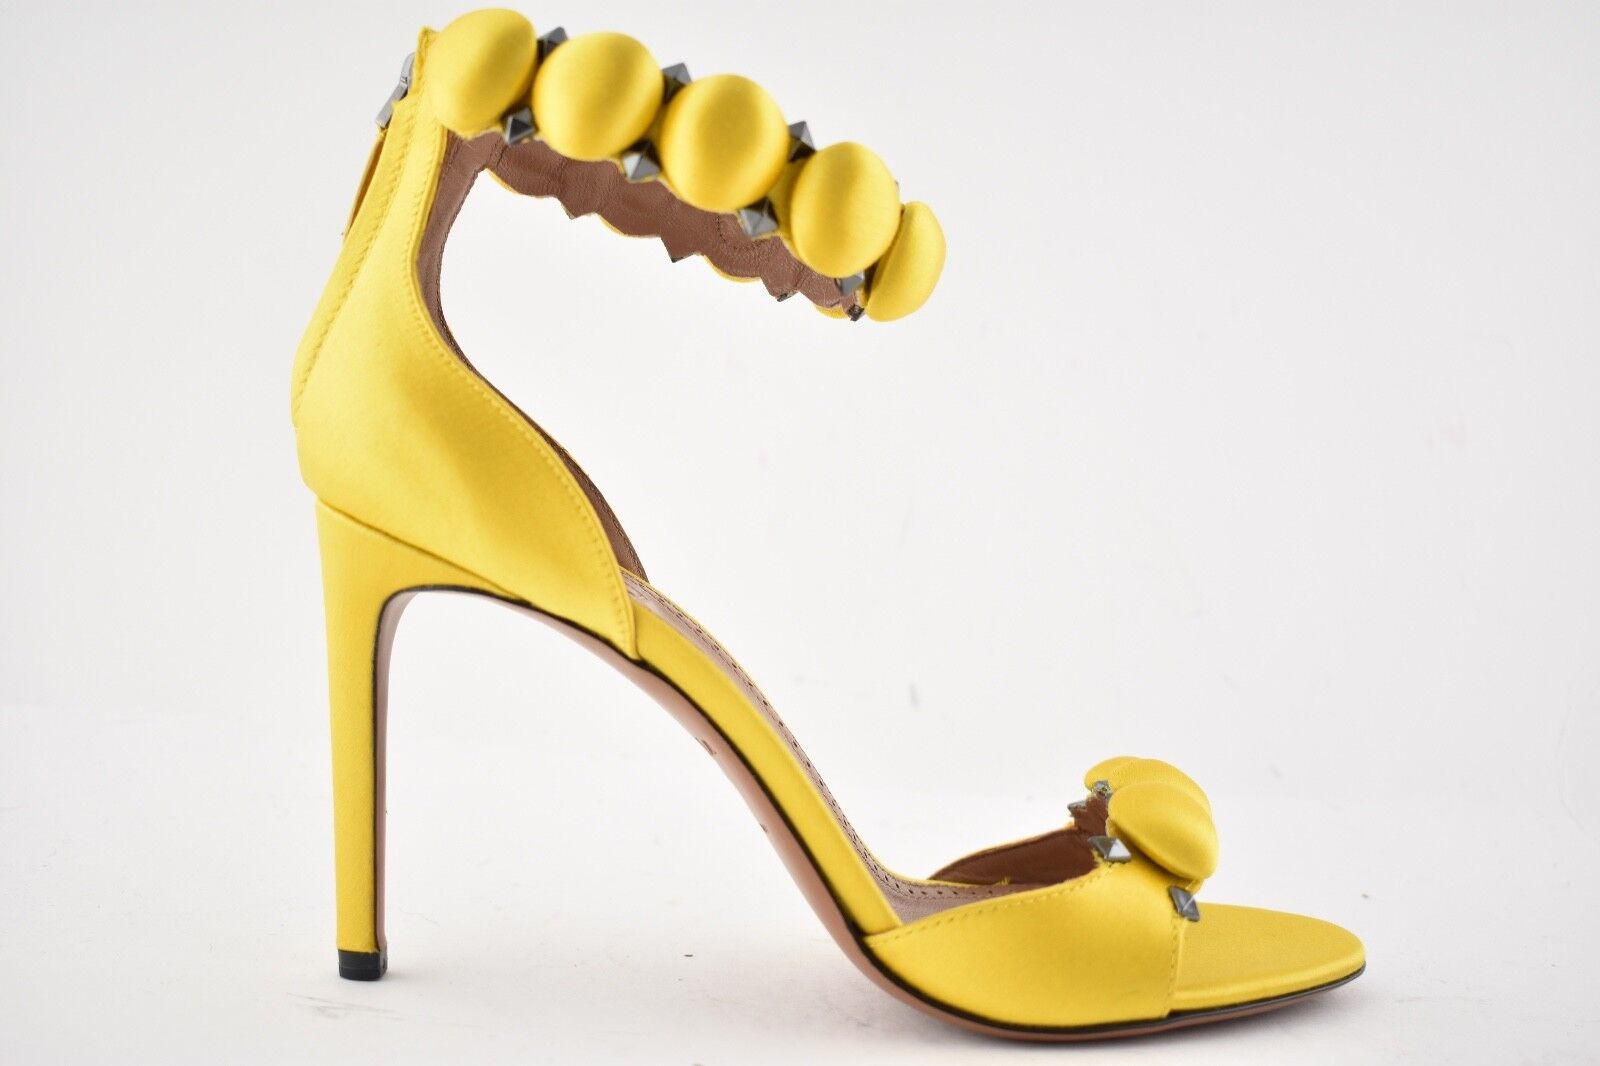 NIB Alaia Bombe 90mm Yellow Ambre Satin Studded Ankle Ankle Ankle Strap Sandal Heel Pump 38 e3a97f